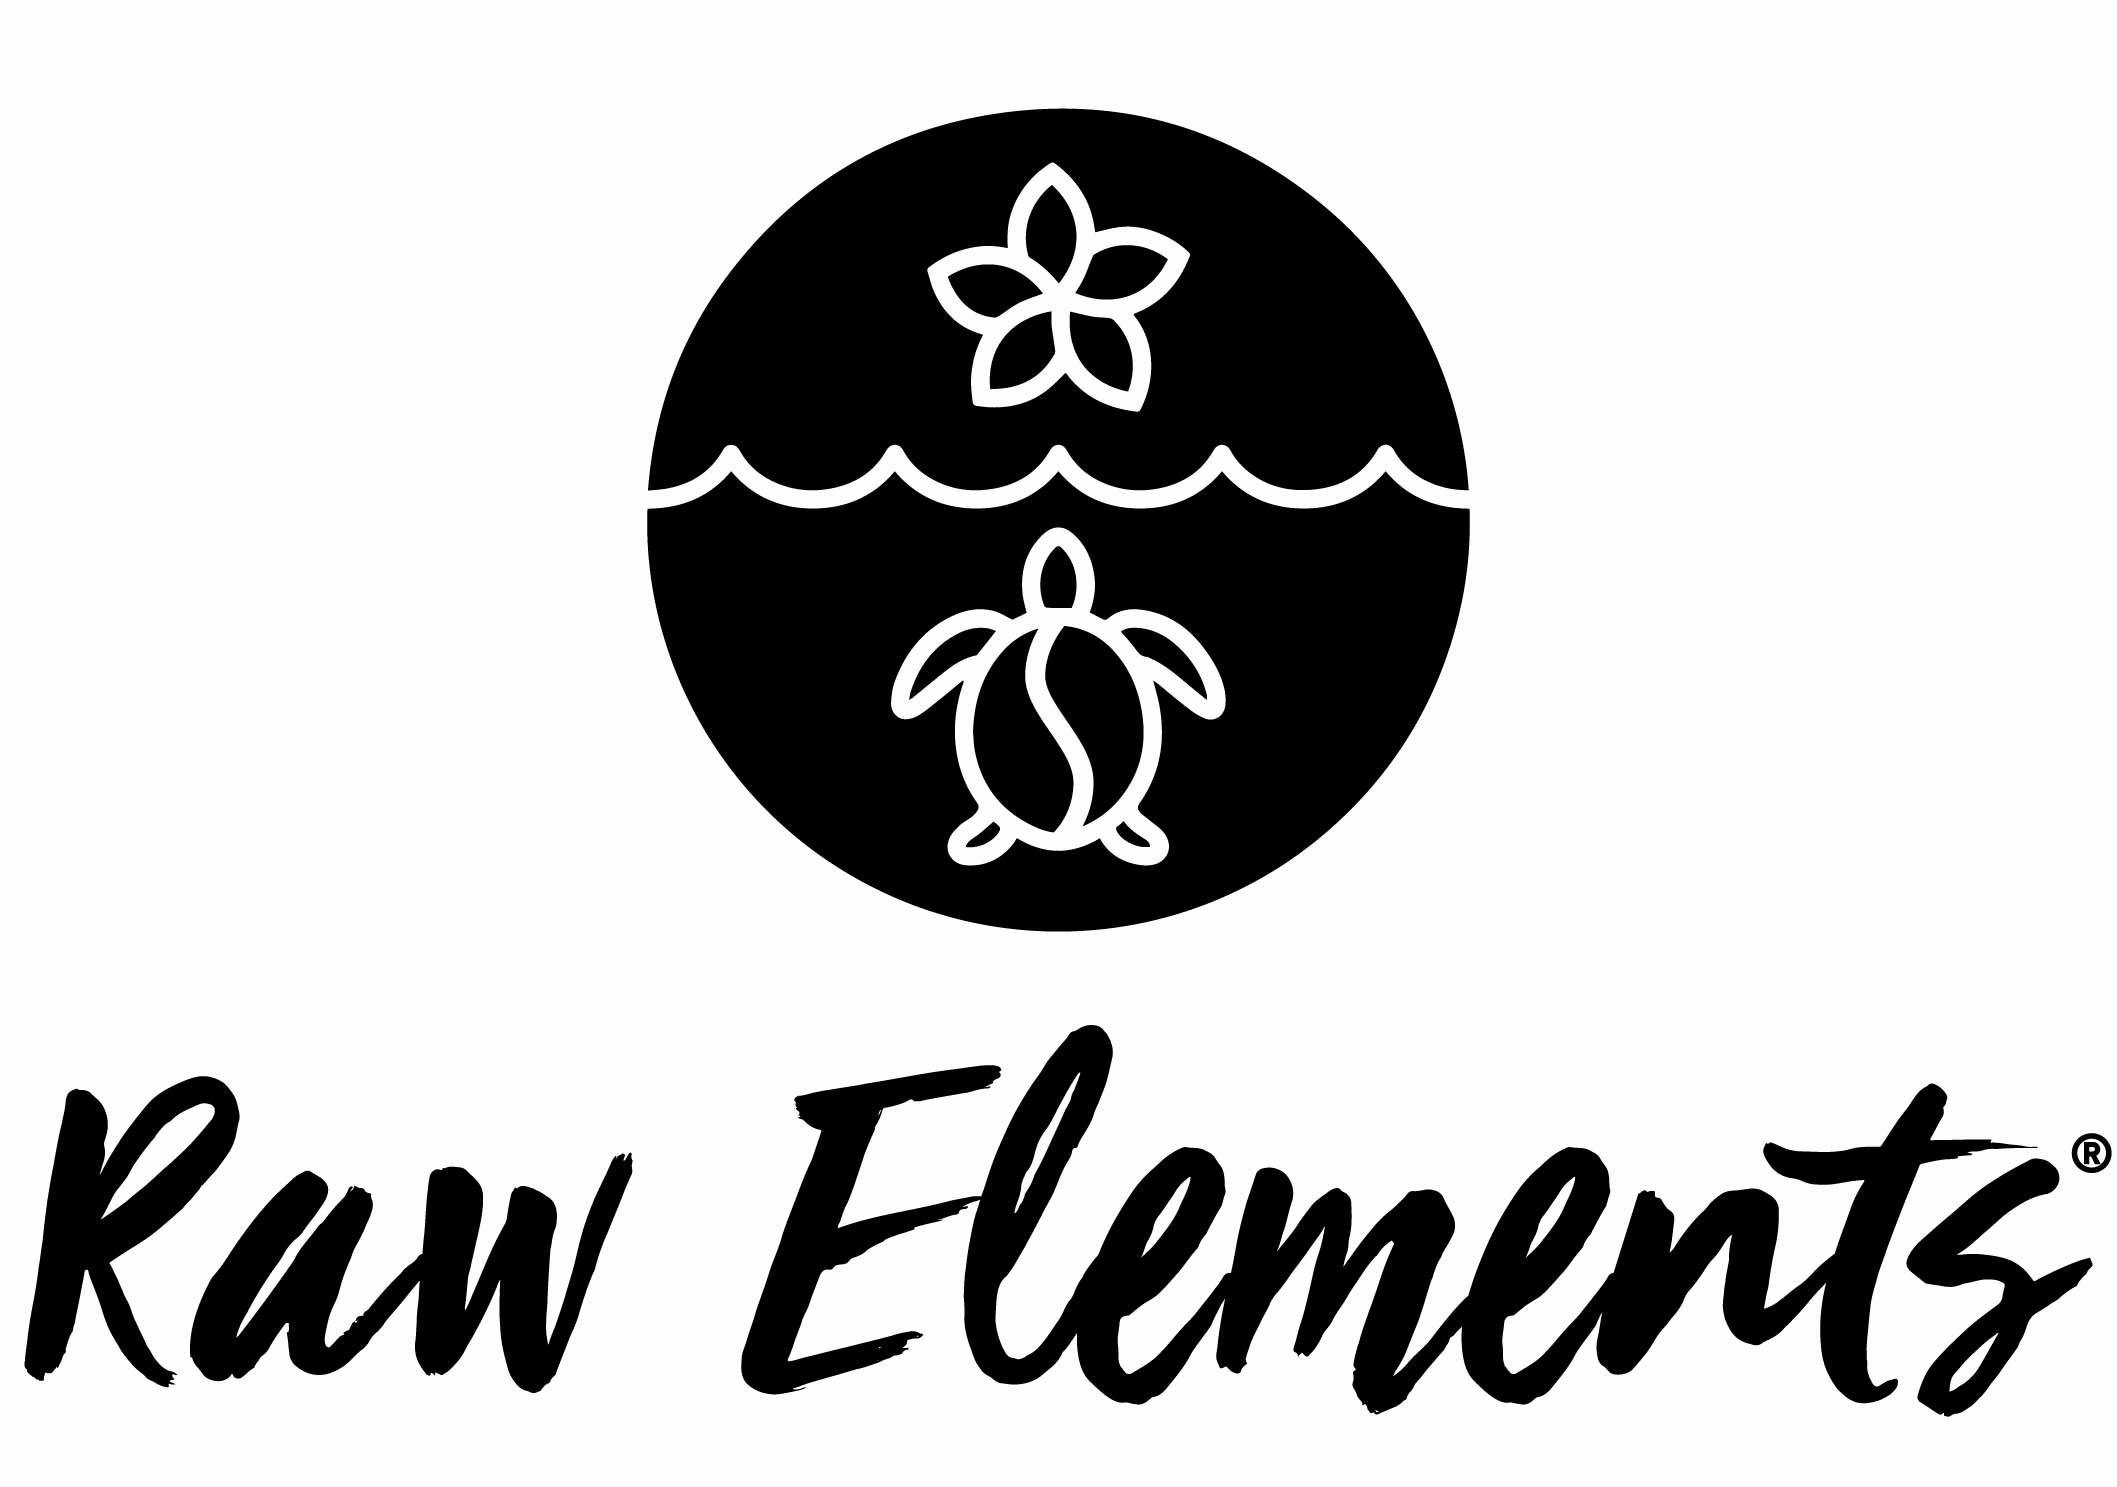 raw elements as exhibitor in sedona mountain bike festival